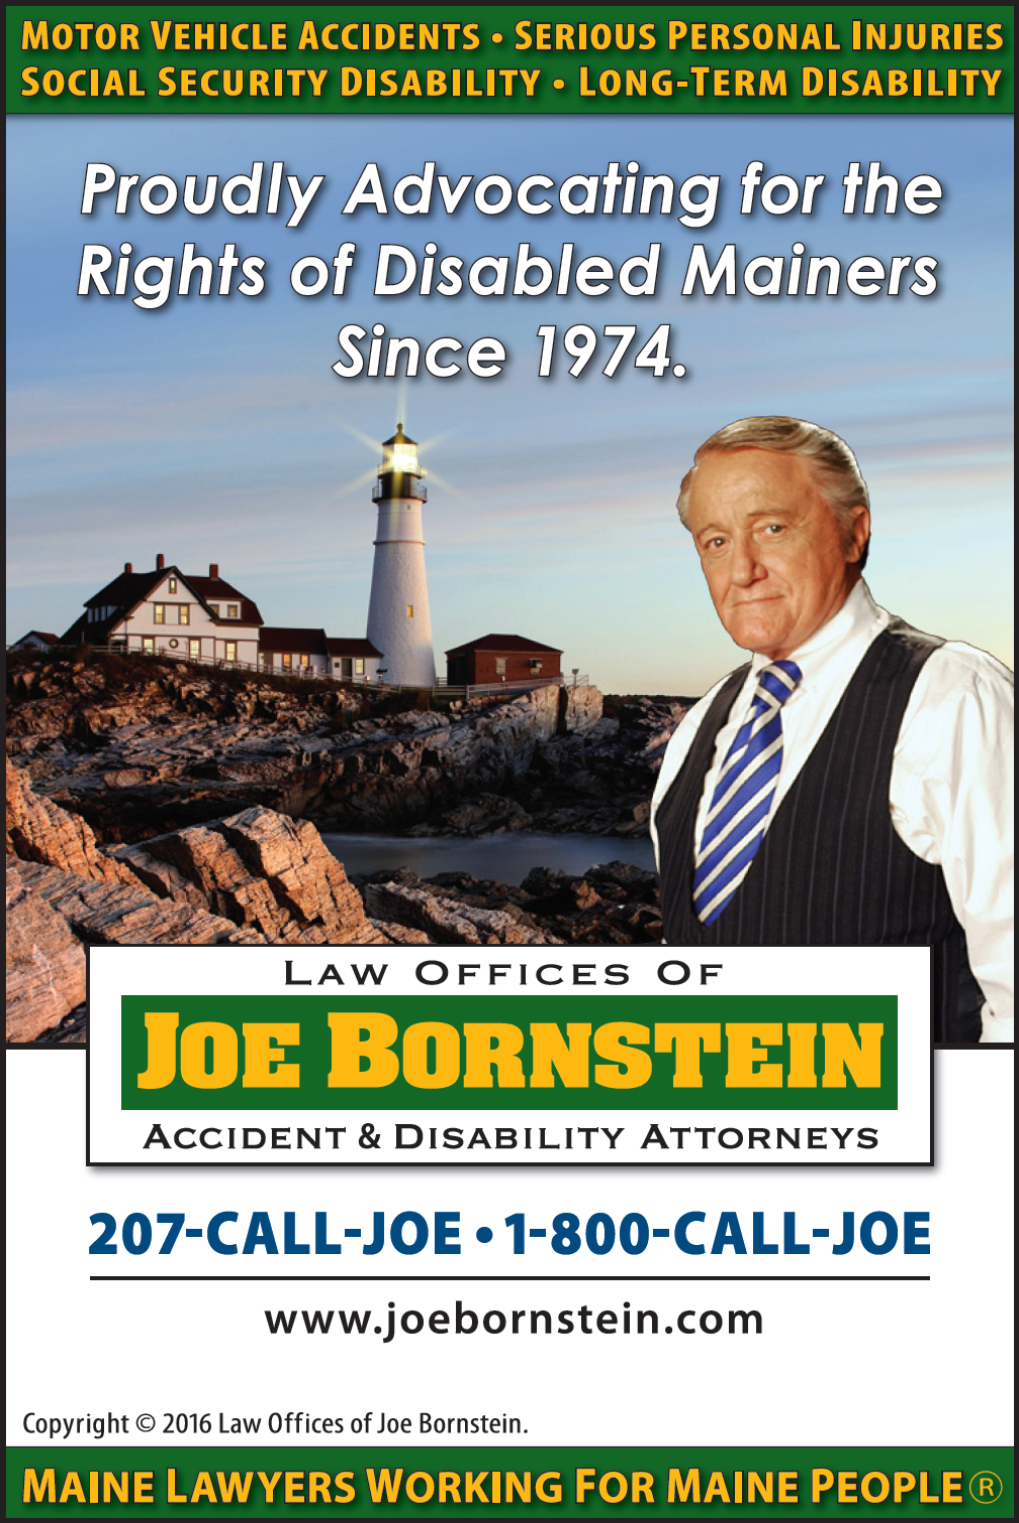 The Law Offices of Joe Bornstein